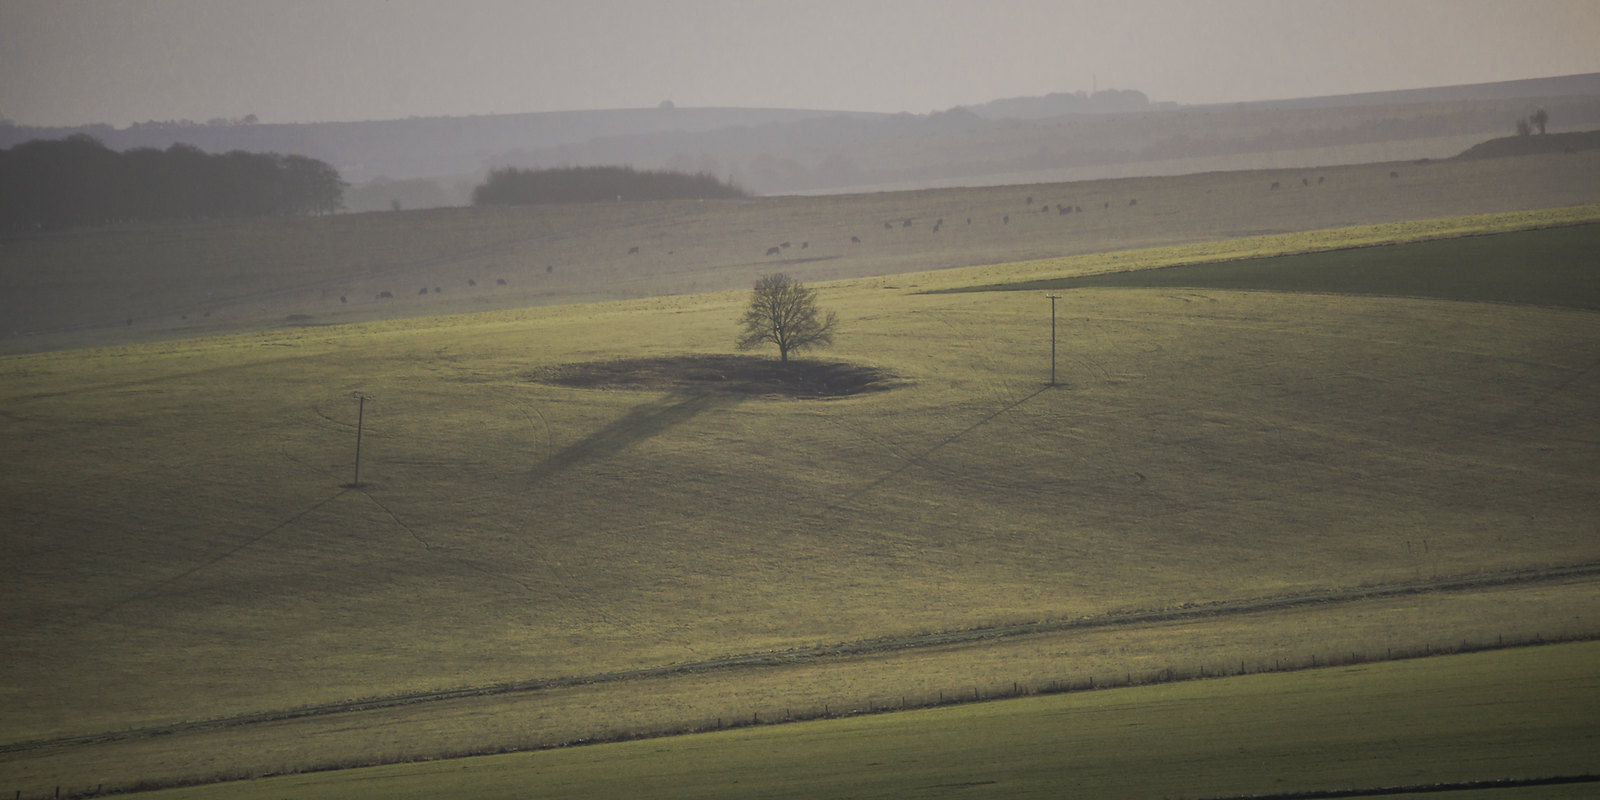 A Spring Sunset Tree Casts a Long Shadow